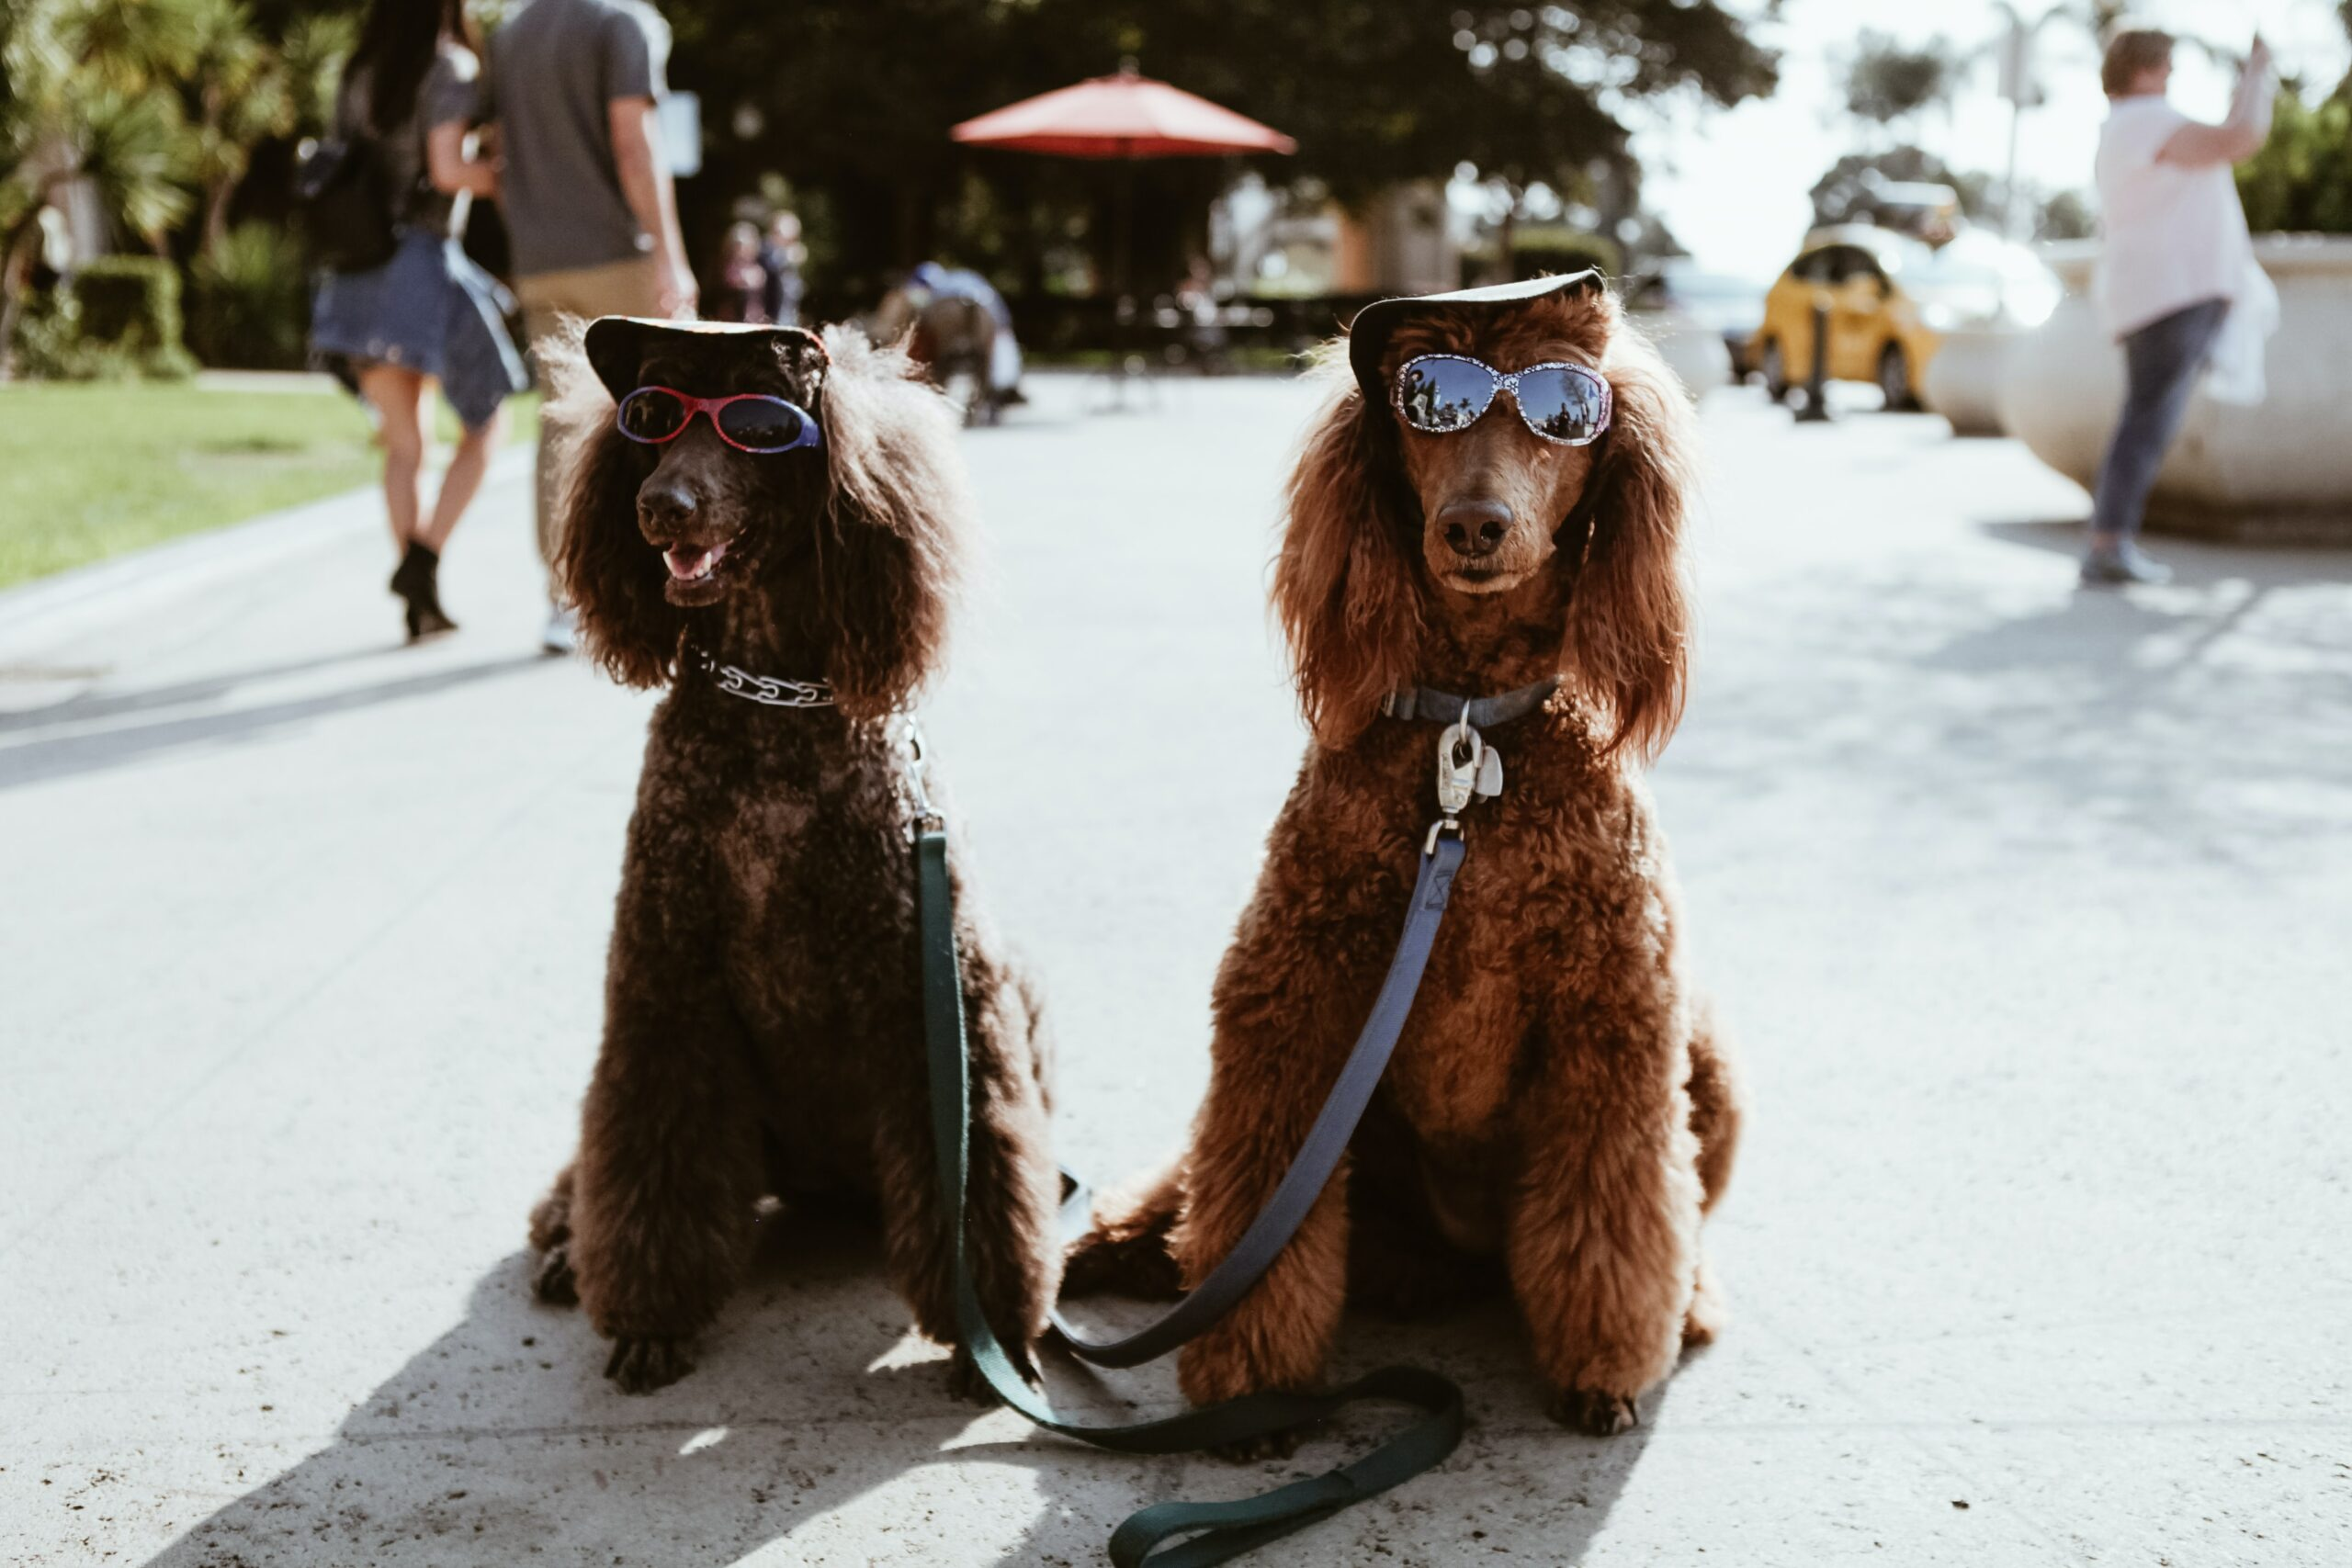 Keeping Your Dog Entertained While You're Away: 8 Simple Ways